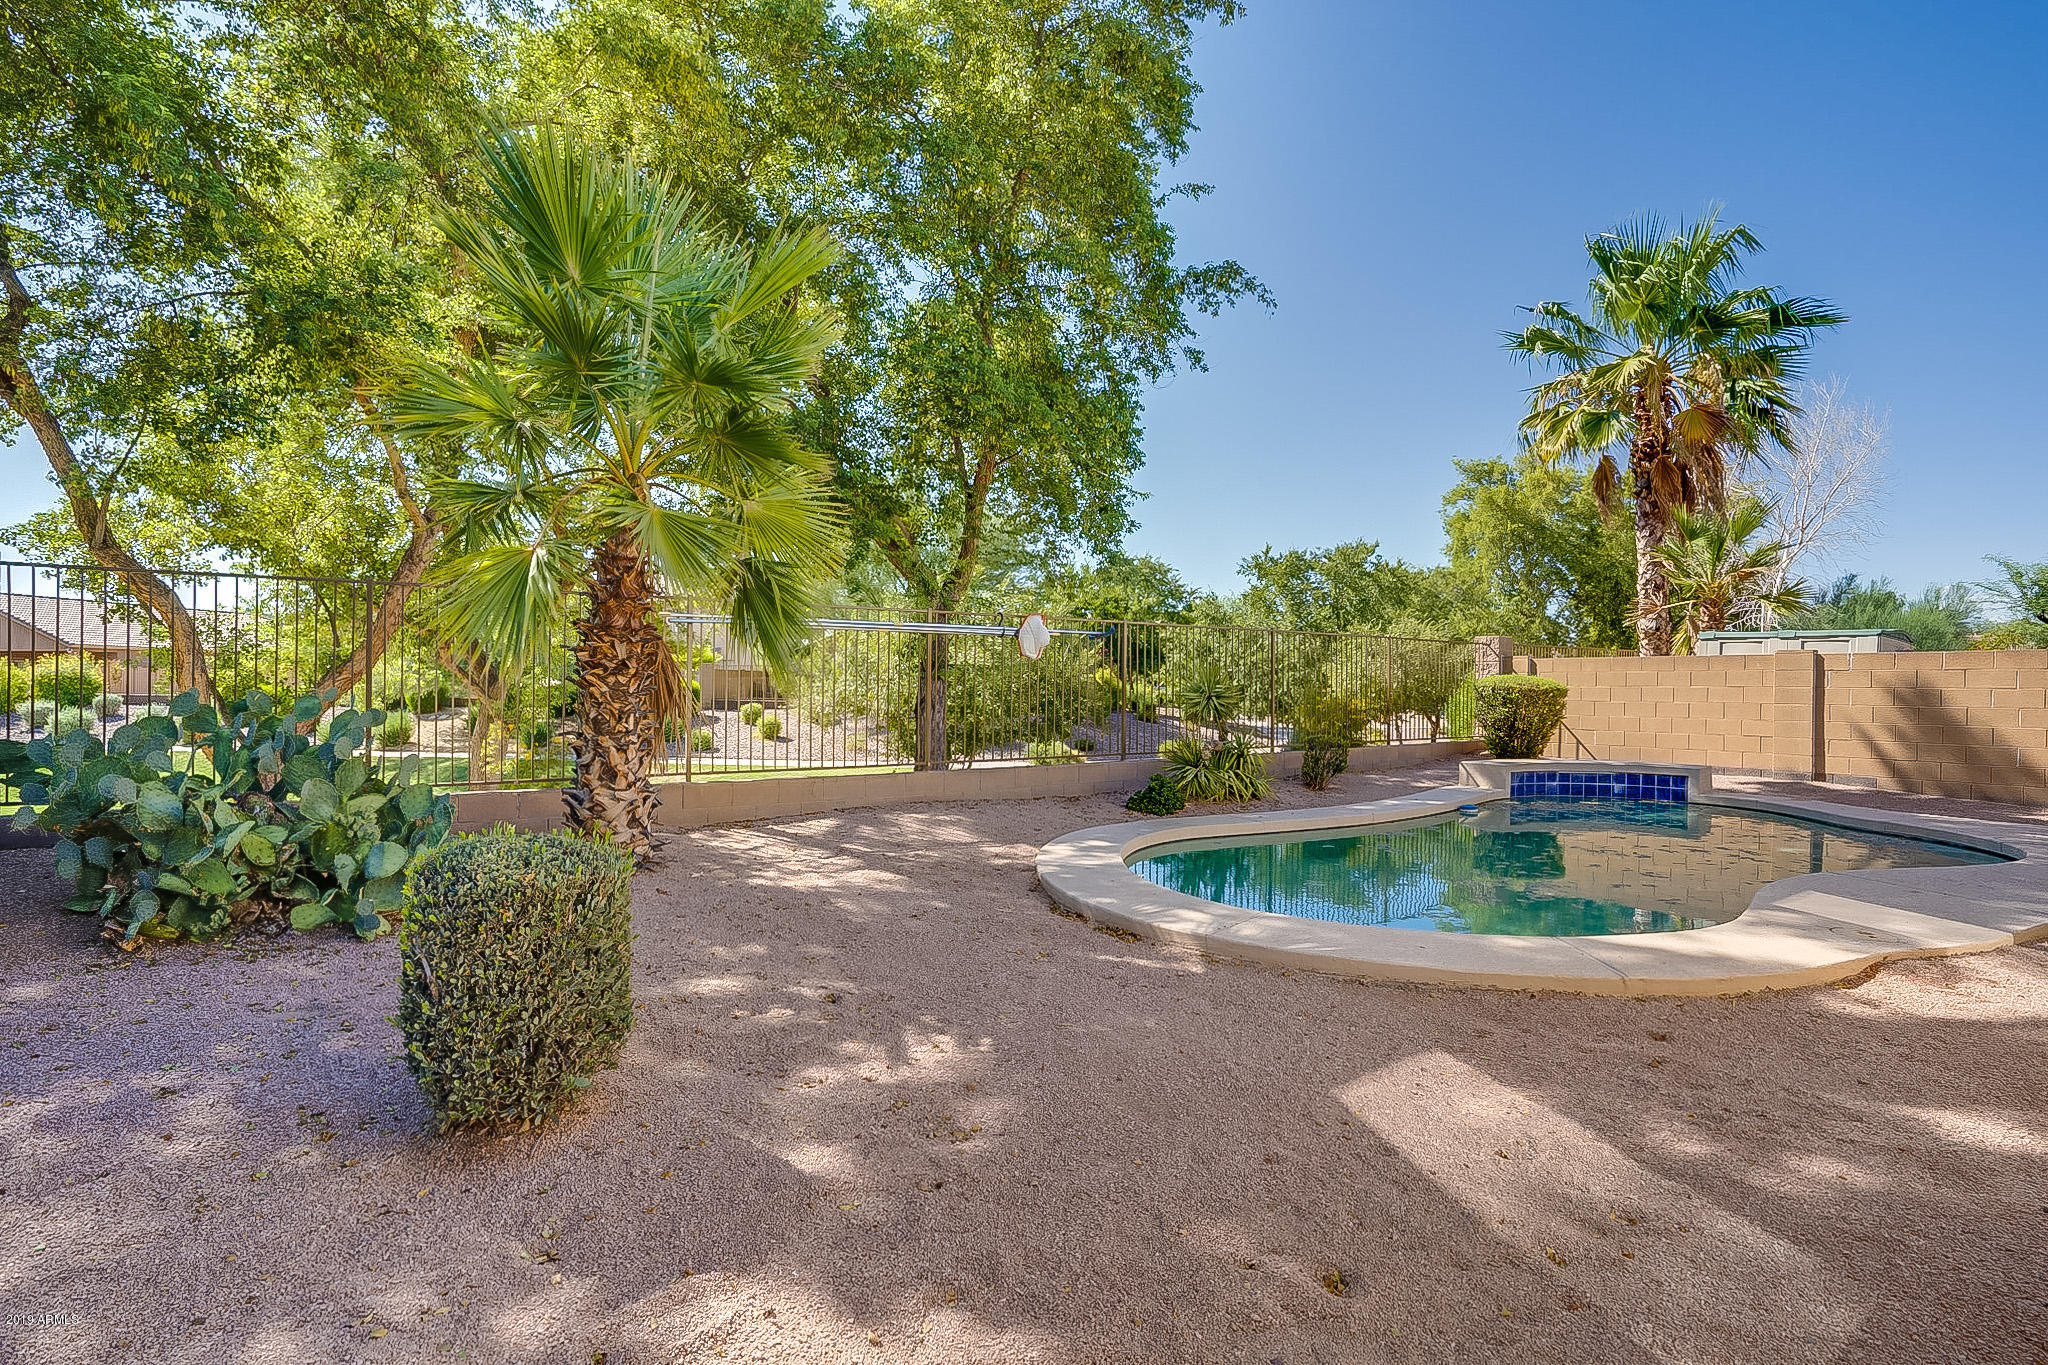 MLS 5971442 1920 S 83RD Drive, Tolleson, AZ 85353 Tolleson AZ Private Pool